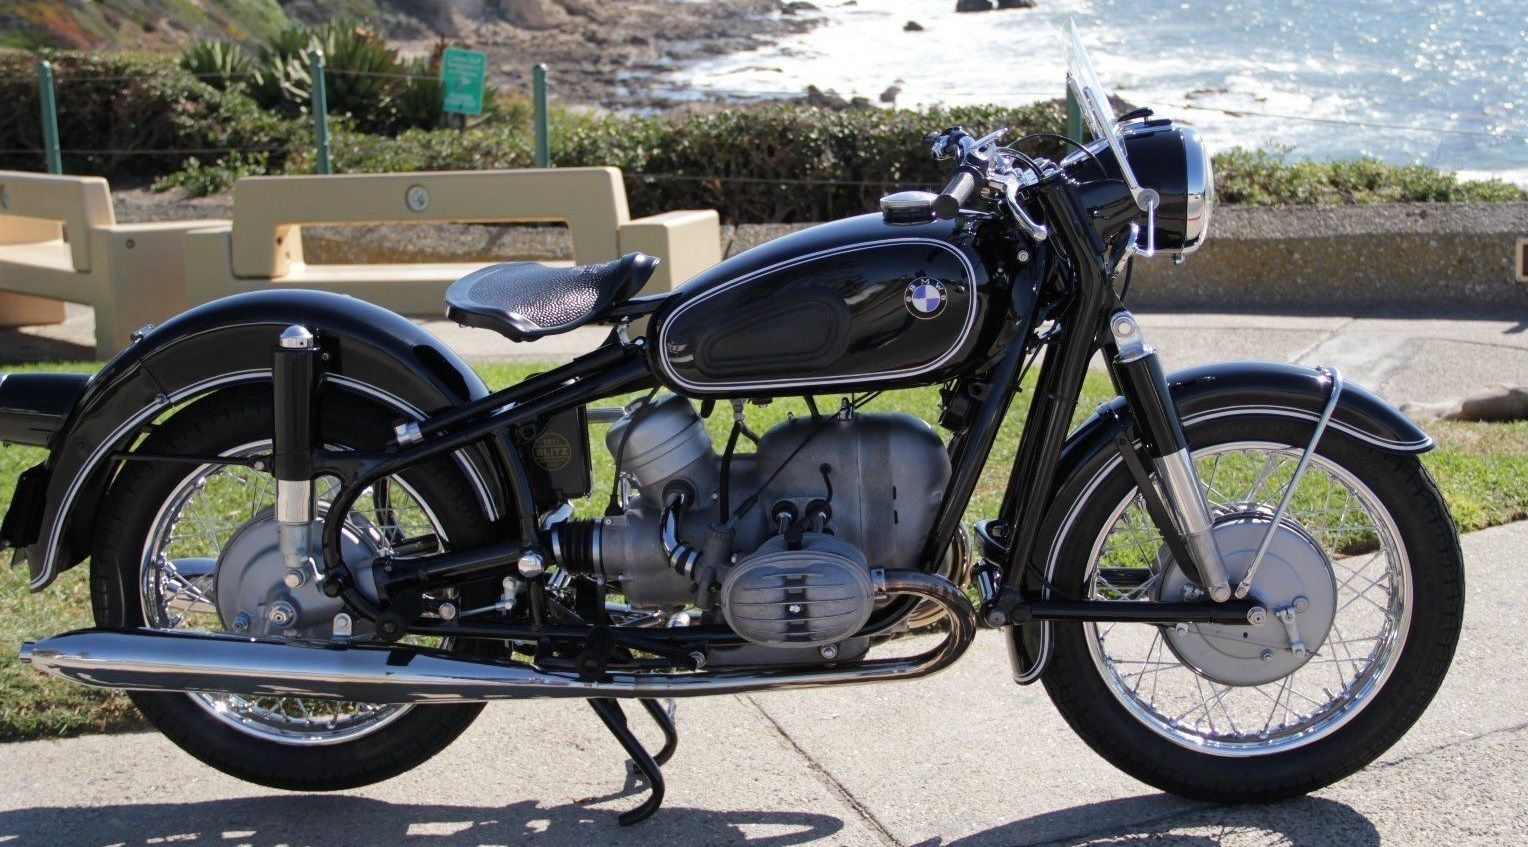 Restored Bmw R50 2 1966 Photographs At Classic Bikes